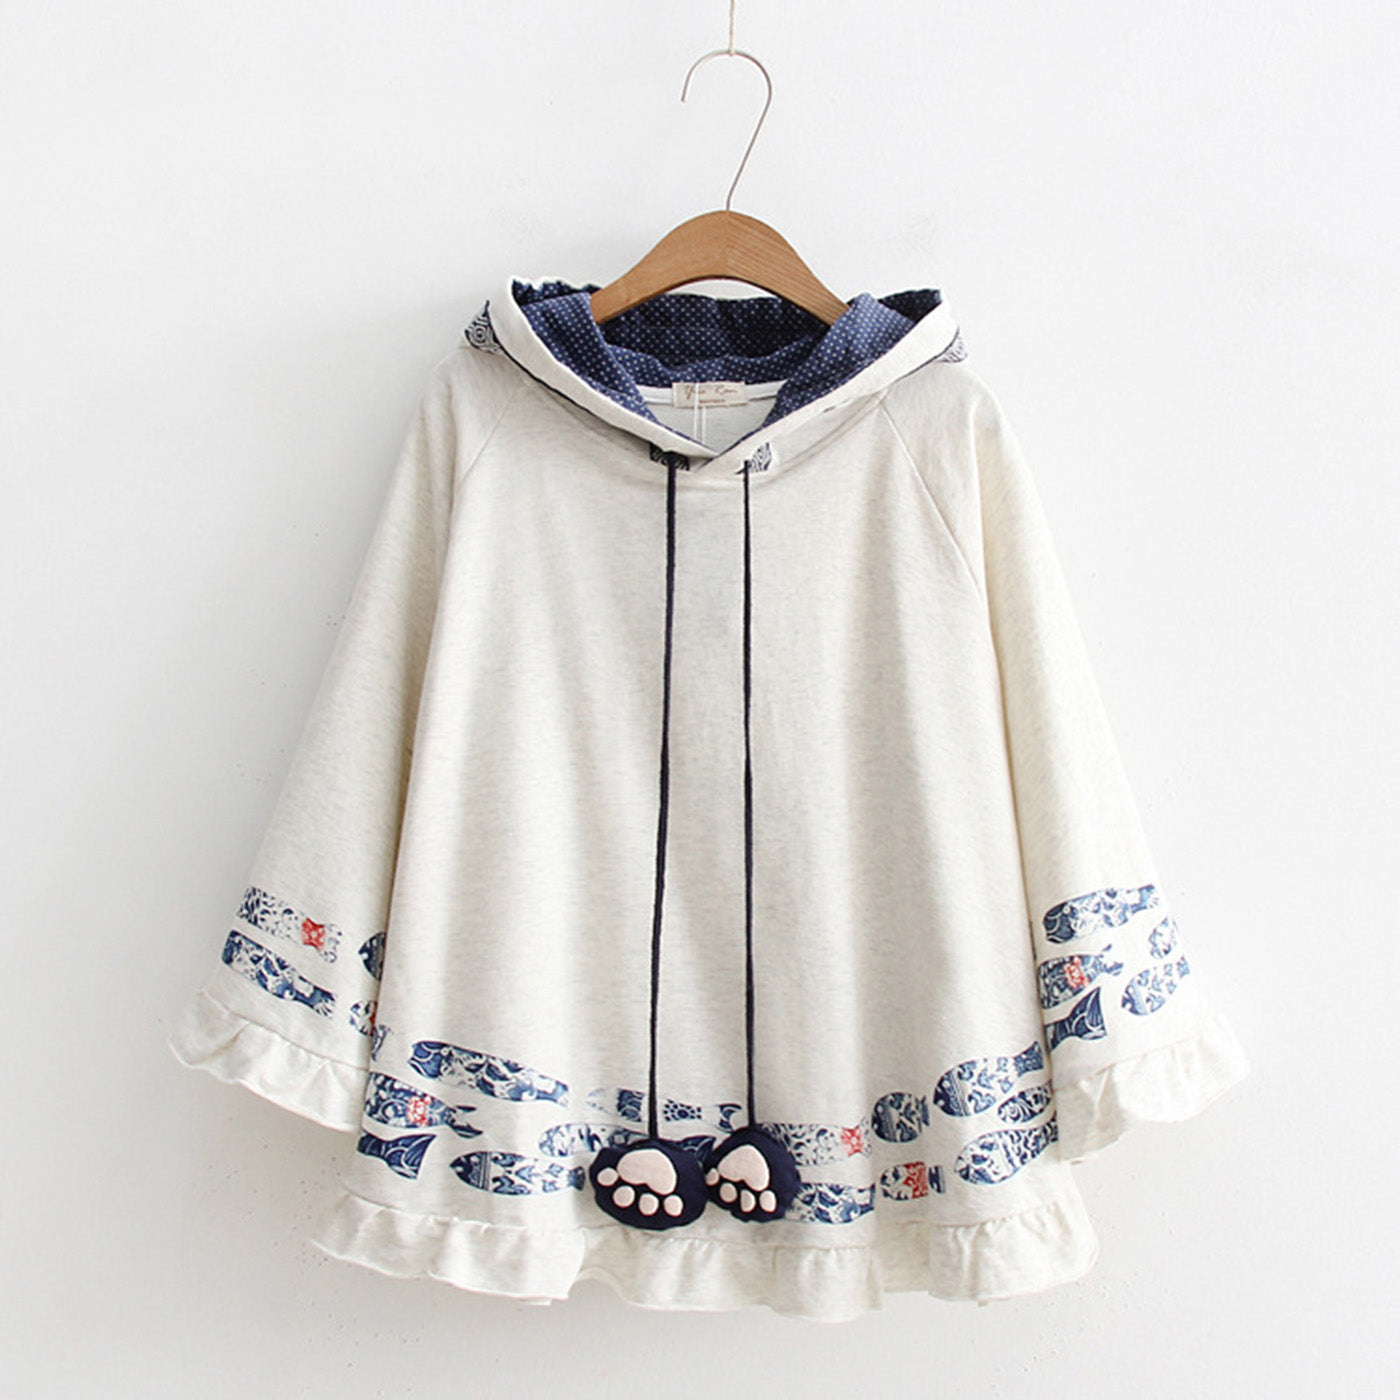 CORIRESHA Mori Hooded Cape